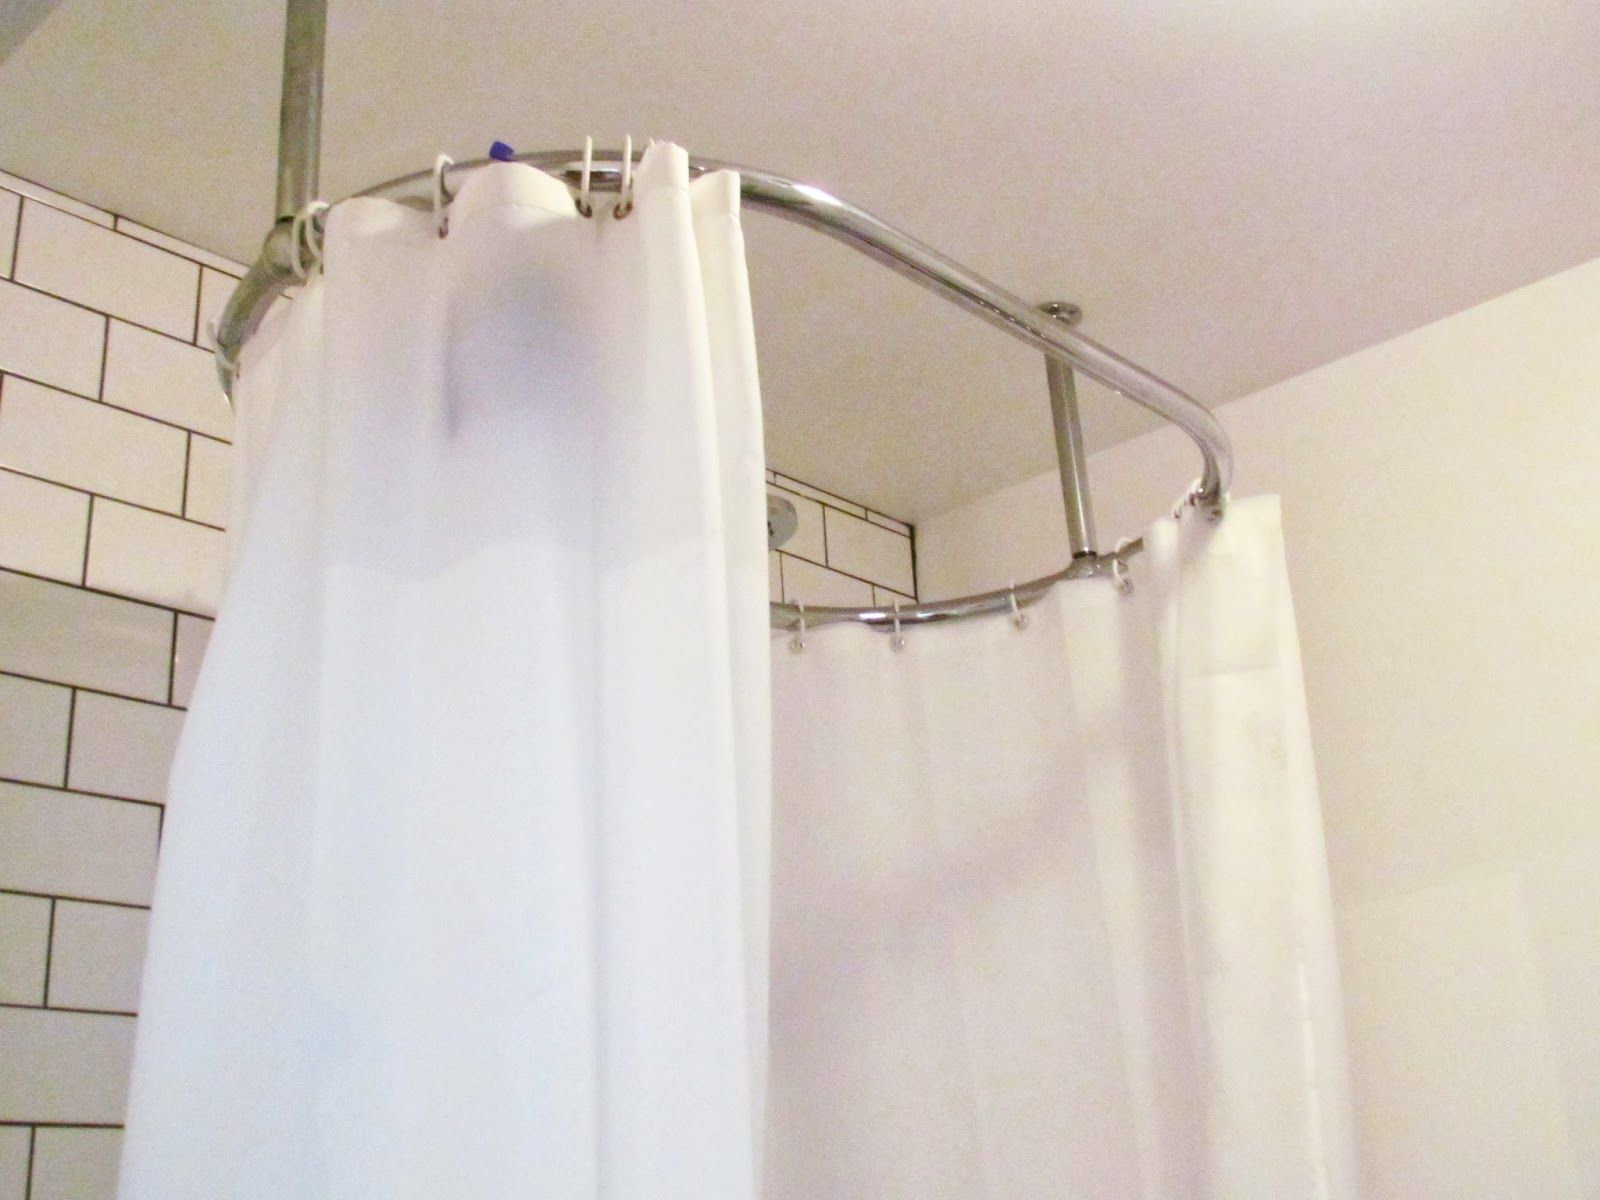 hang shower curtain from ceiling google search home improv hang shower curtain from ceiling google search